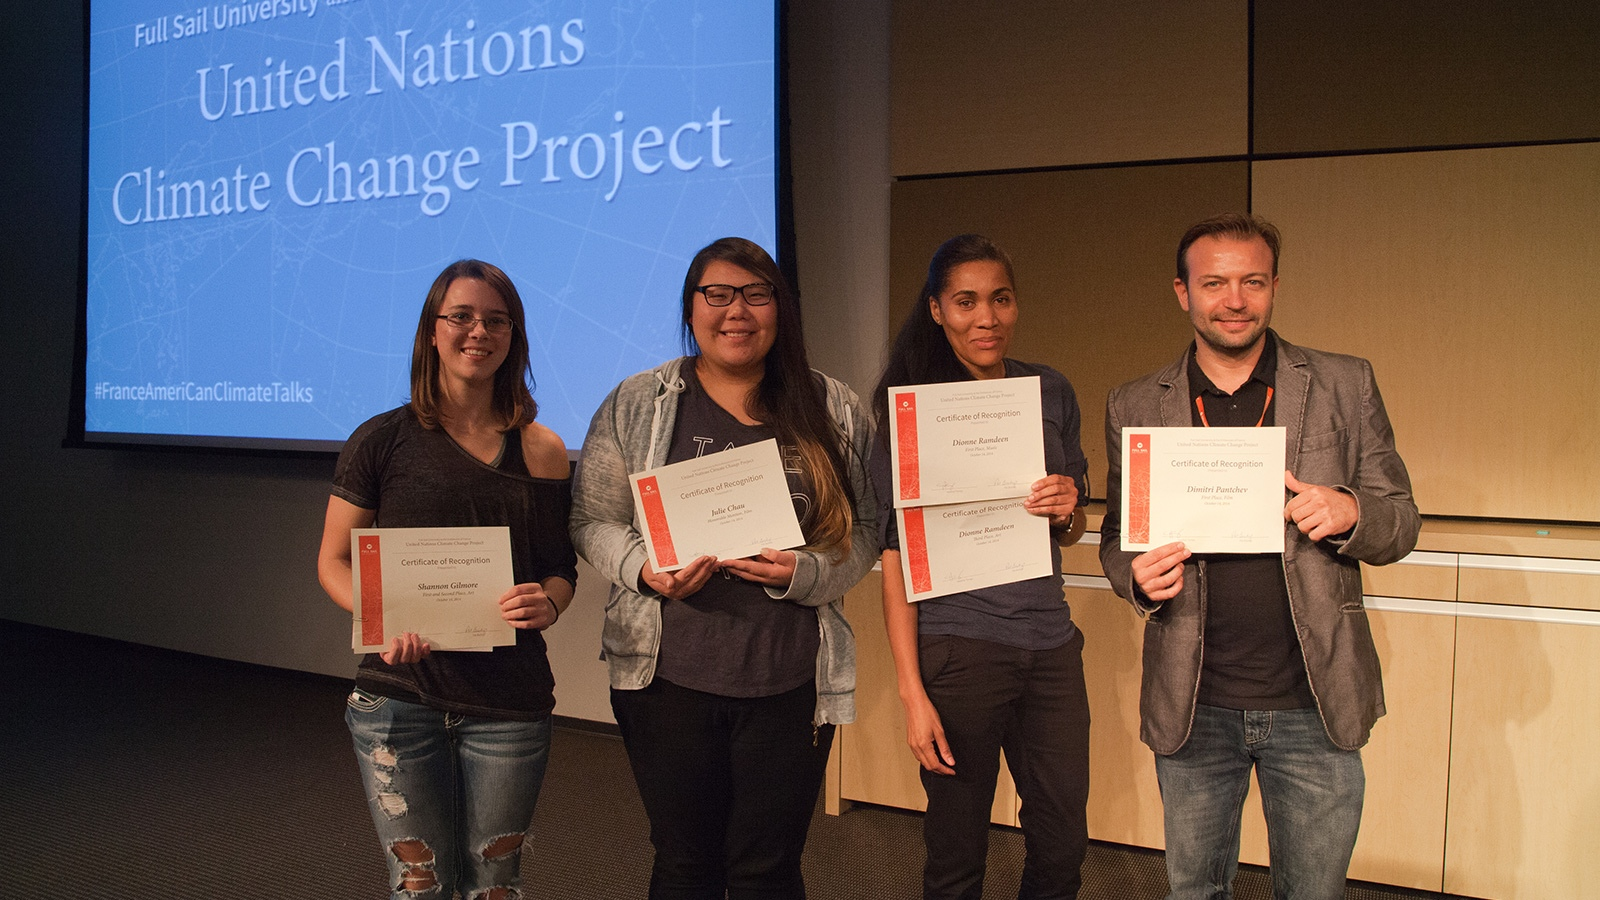 Students Honored for Contributions to UN Climate Change Project - Hero image